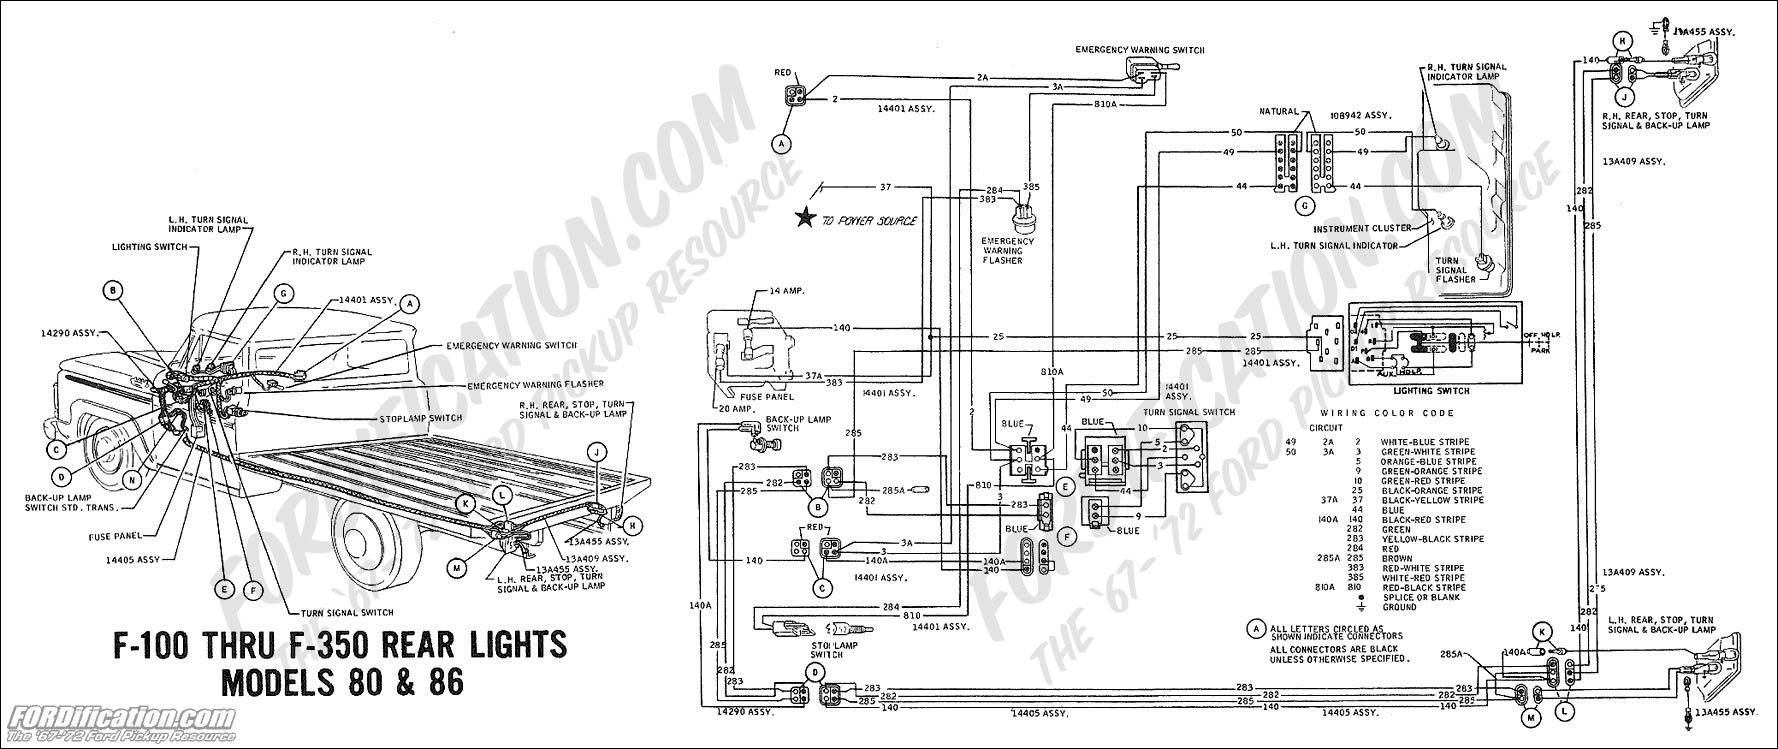 Wiring Diagram For Back Library 57 Chevy Tail Light 1969 F 100 Thru 350 Rear Lights Models 80